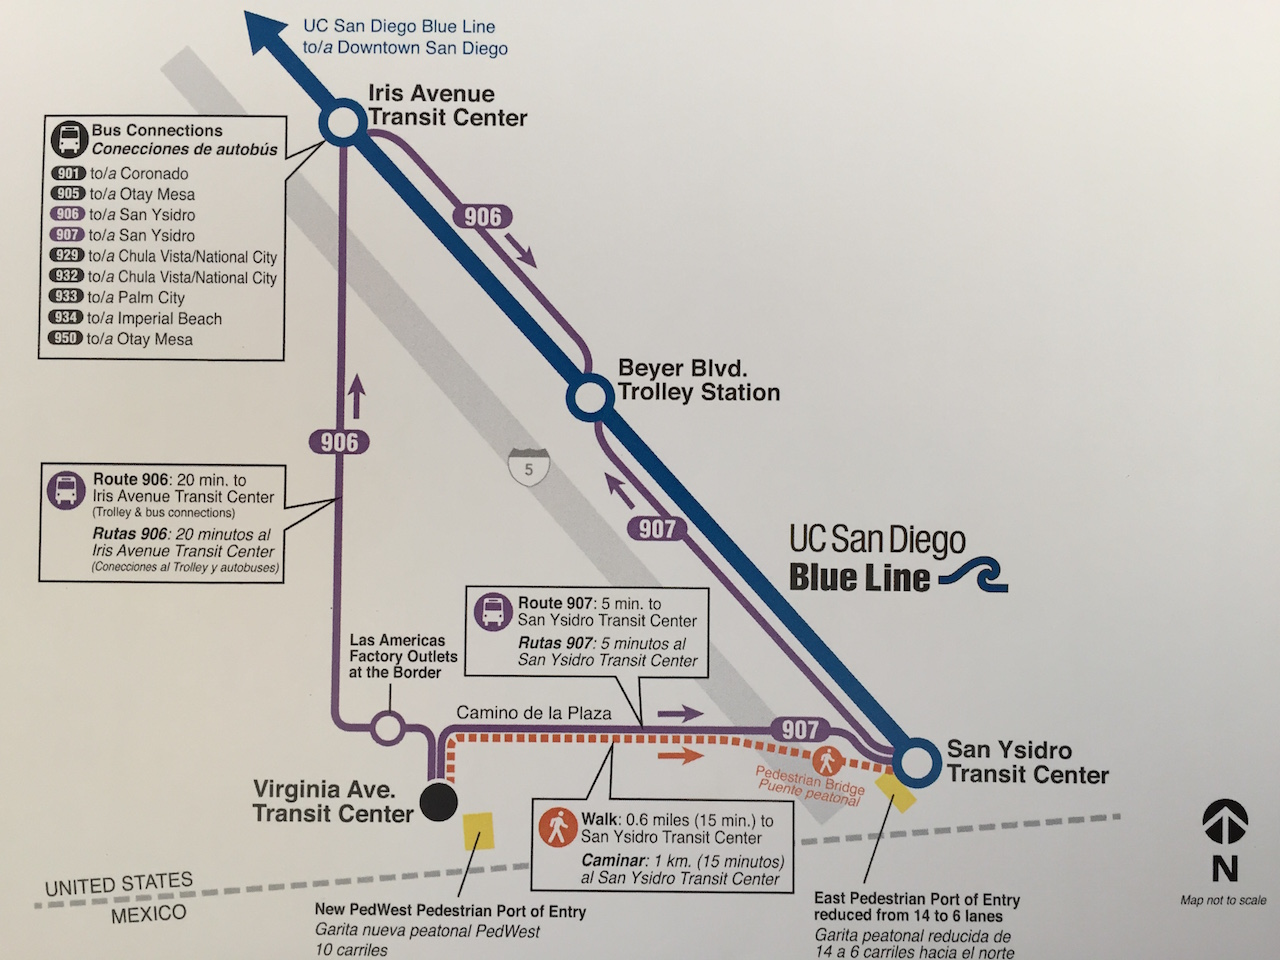 Everything You Need to Know About PedWest, San Ysidro's New ... on trolley map san francisco, miami trolley system map, san diego zoo map, trolley route in dallas, charlotte light rail map, trolley bar map, pittsburgh trolley map, denver light rail map, trolley trail map,